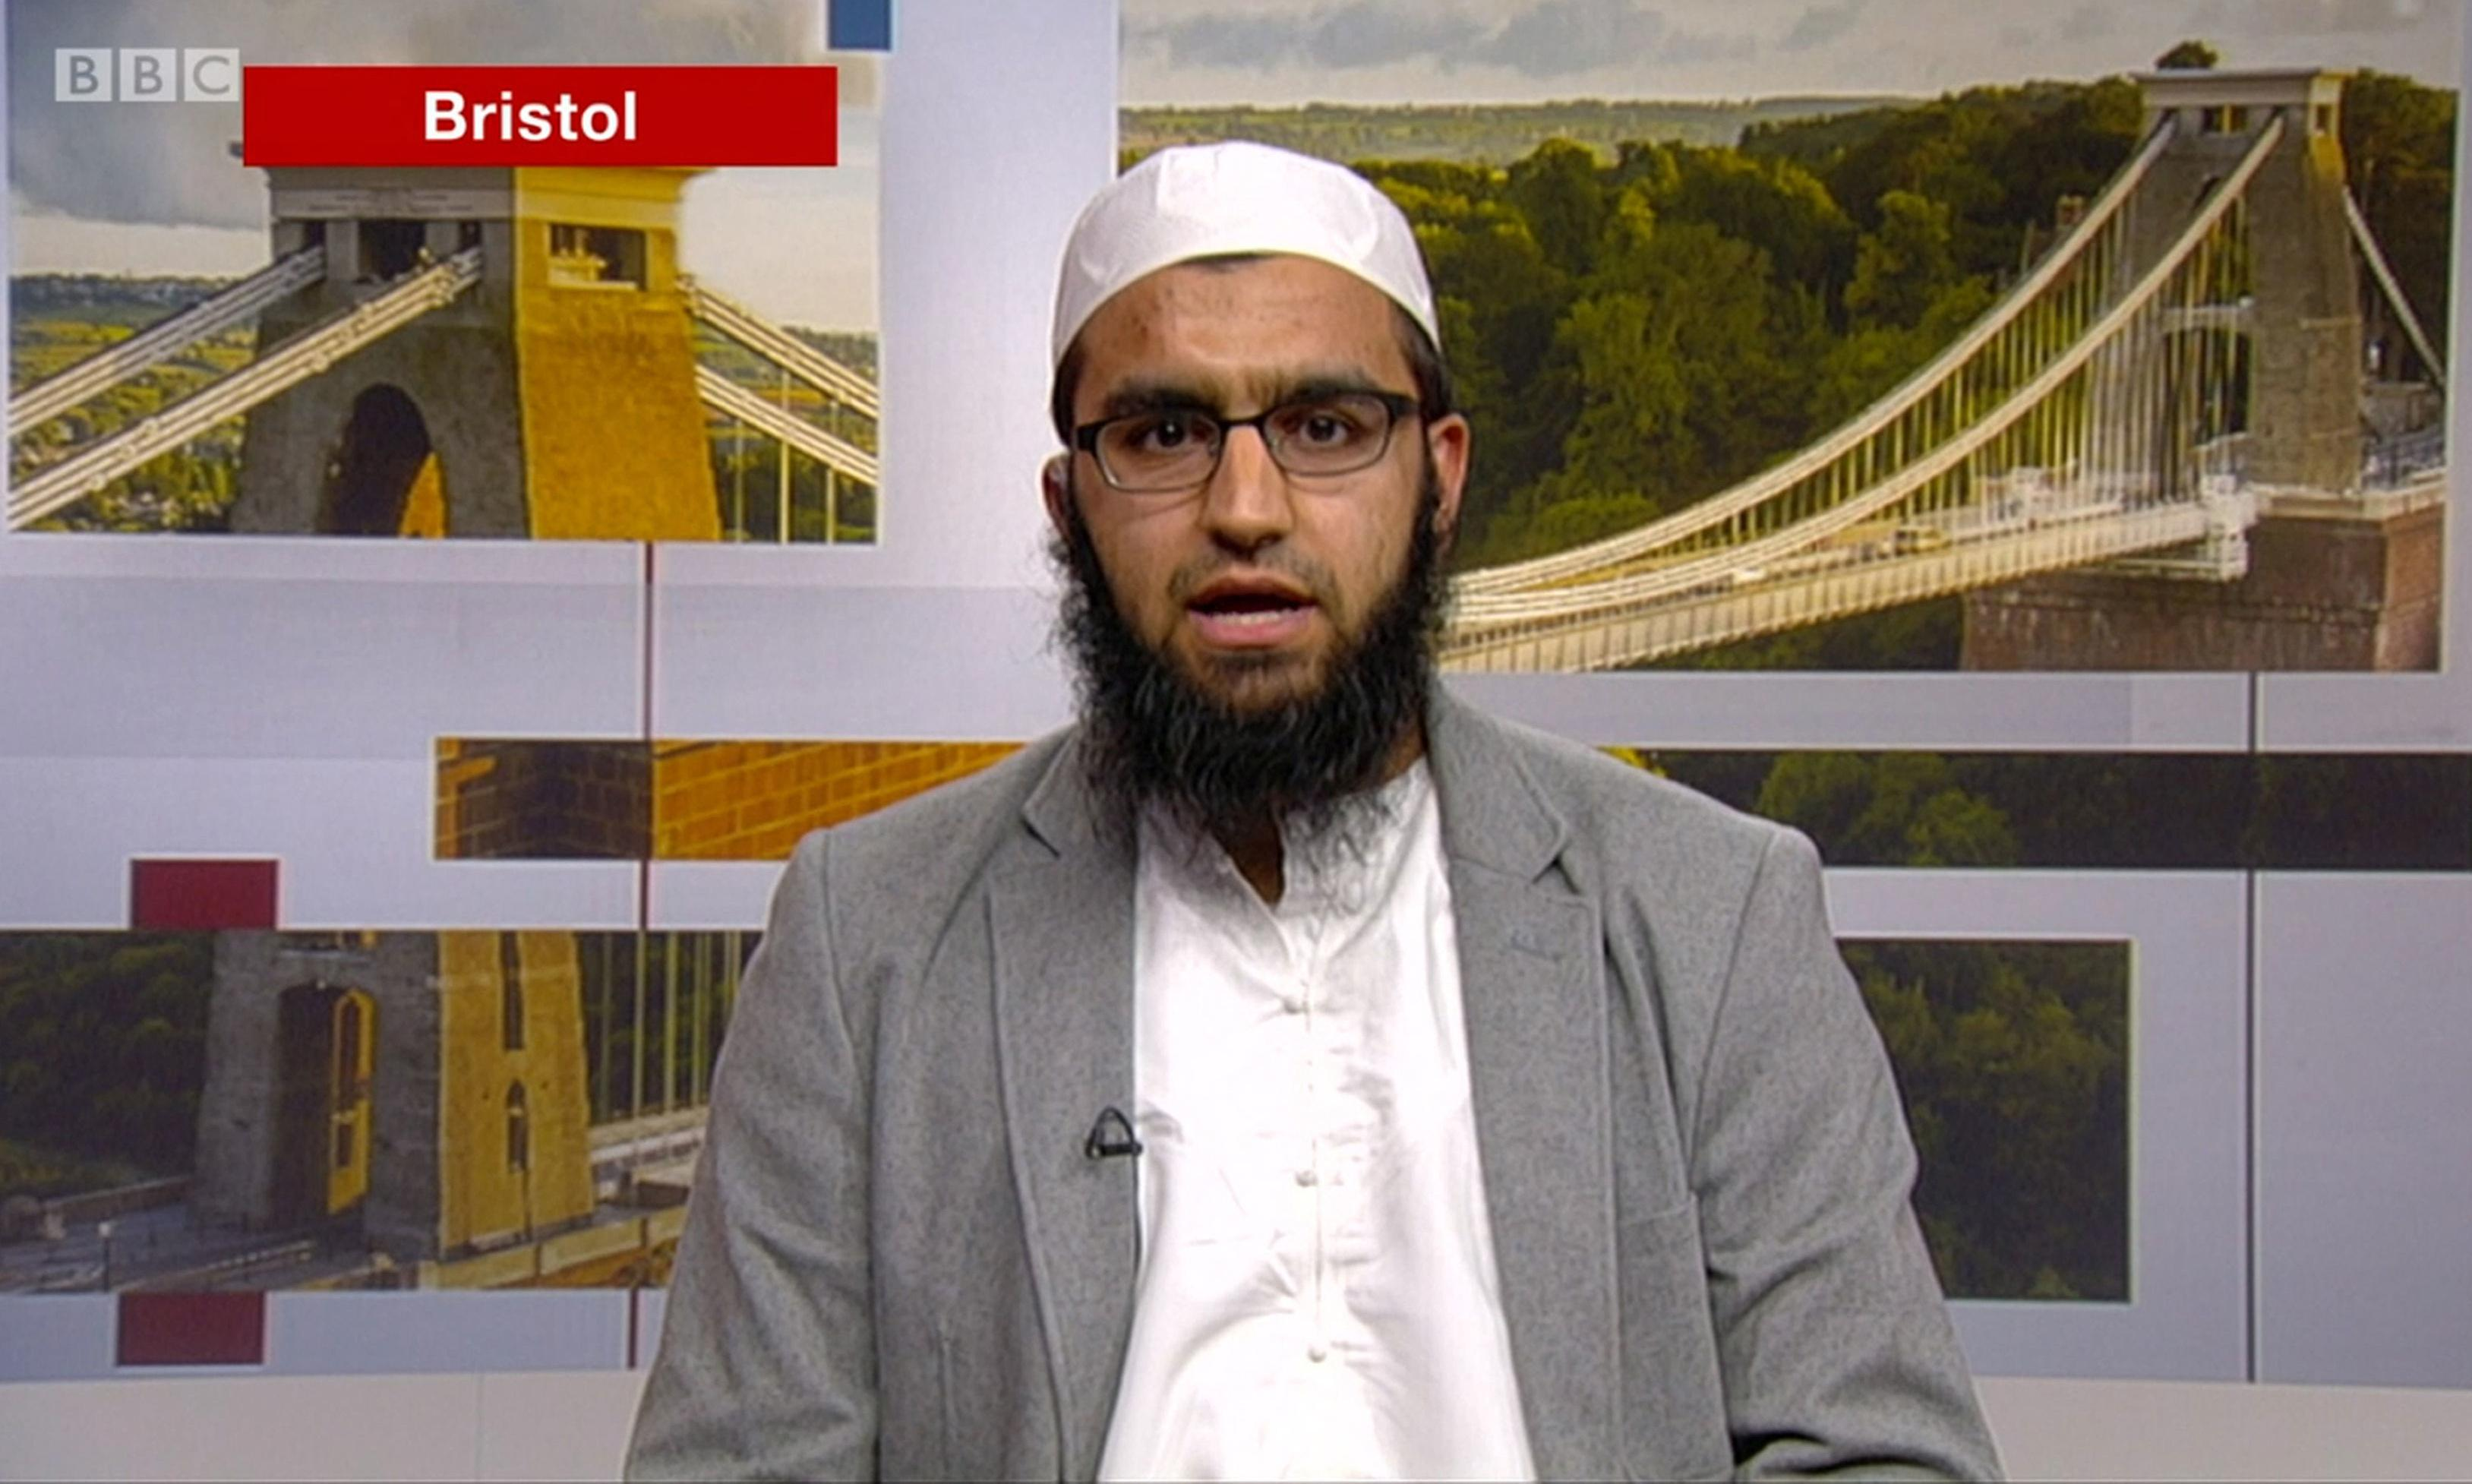 Mosque and school suspend imam after BBC Tory debate